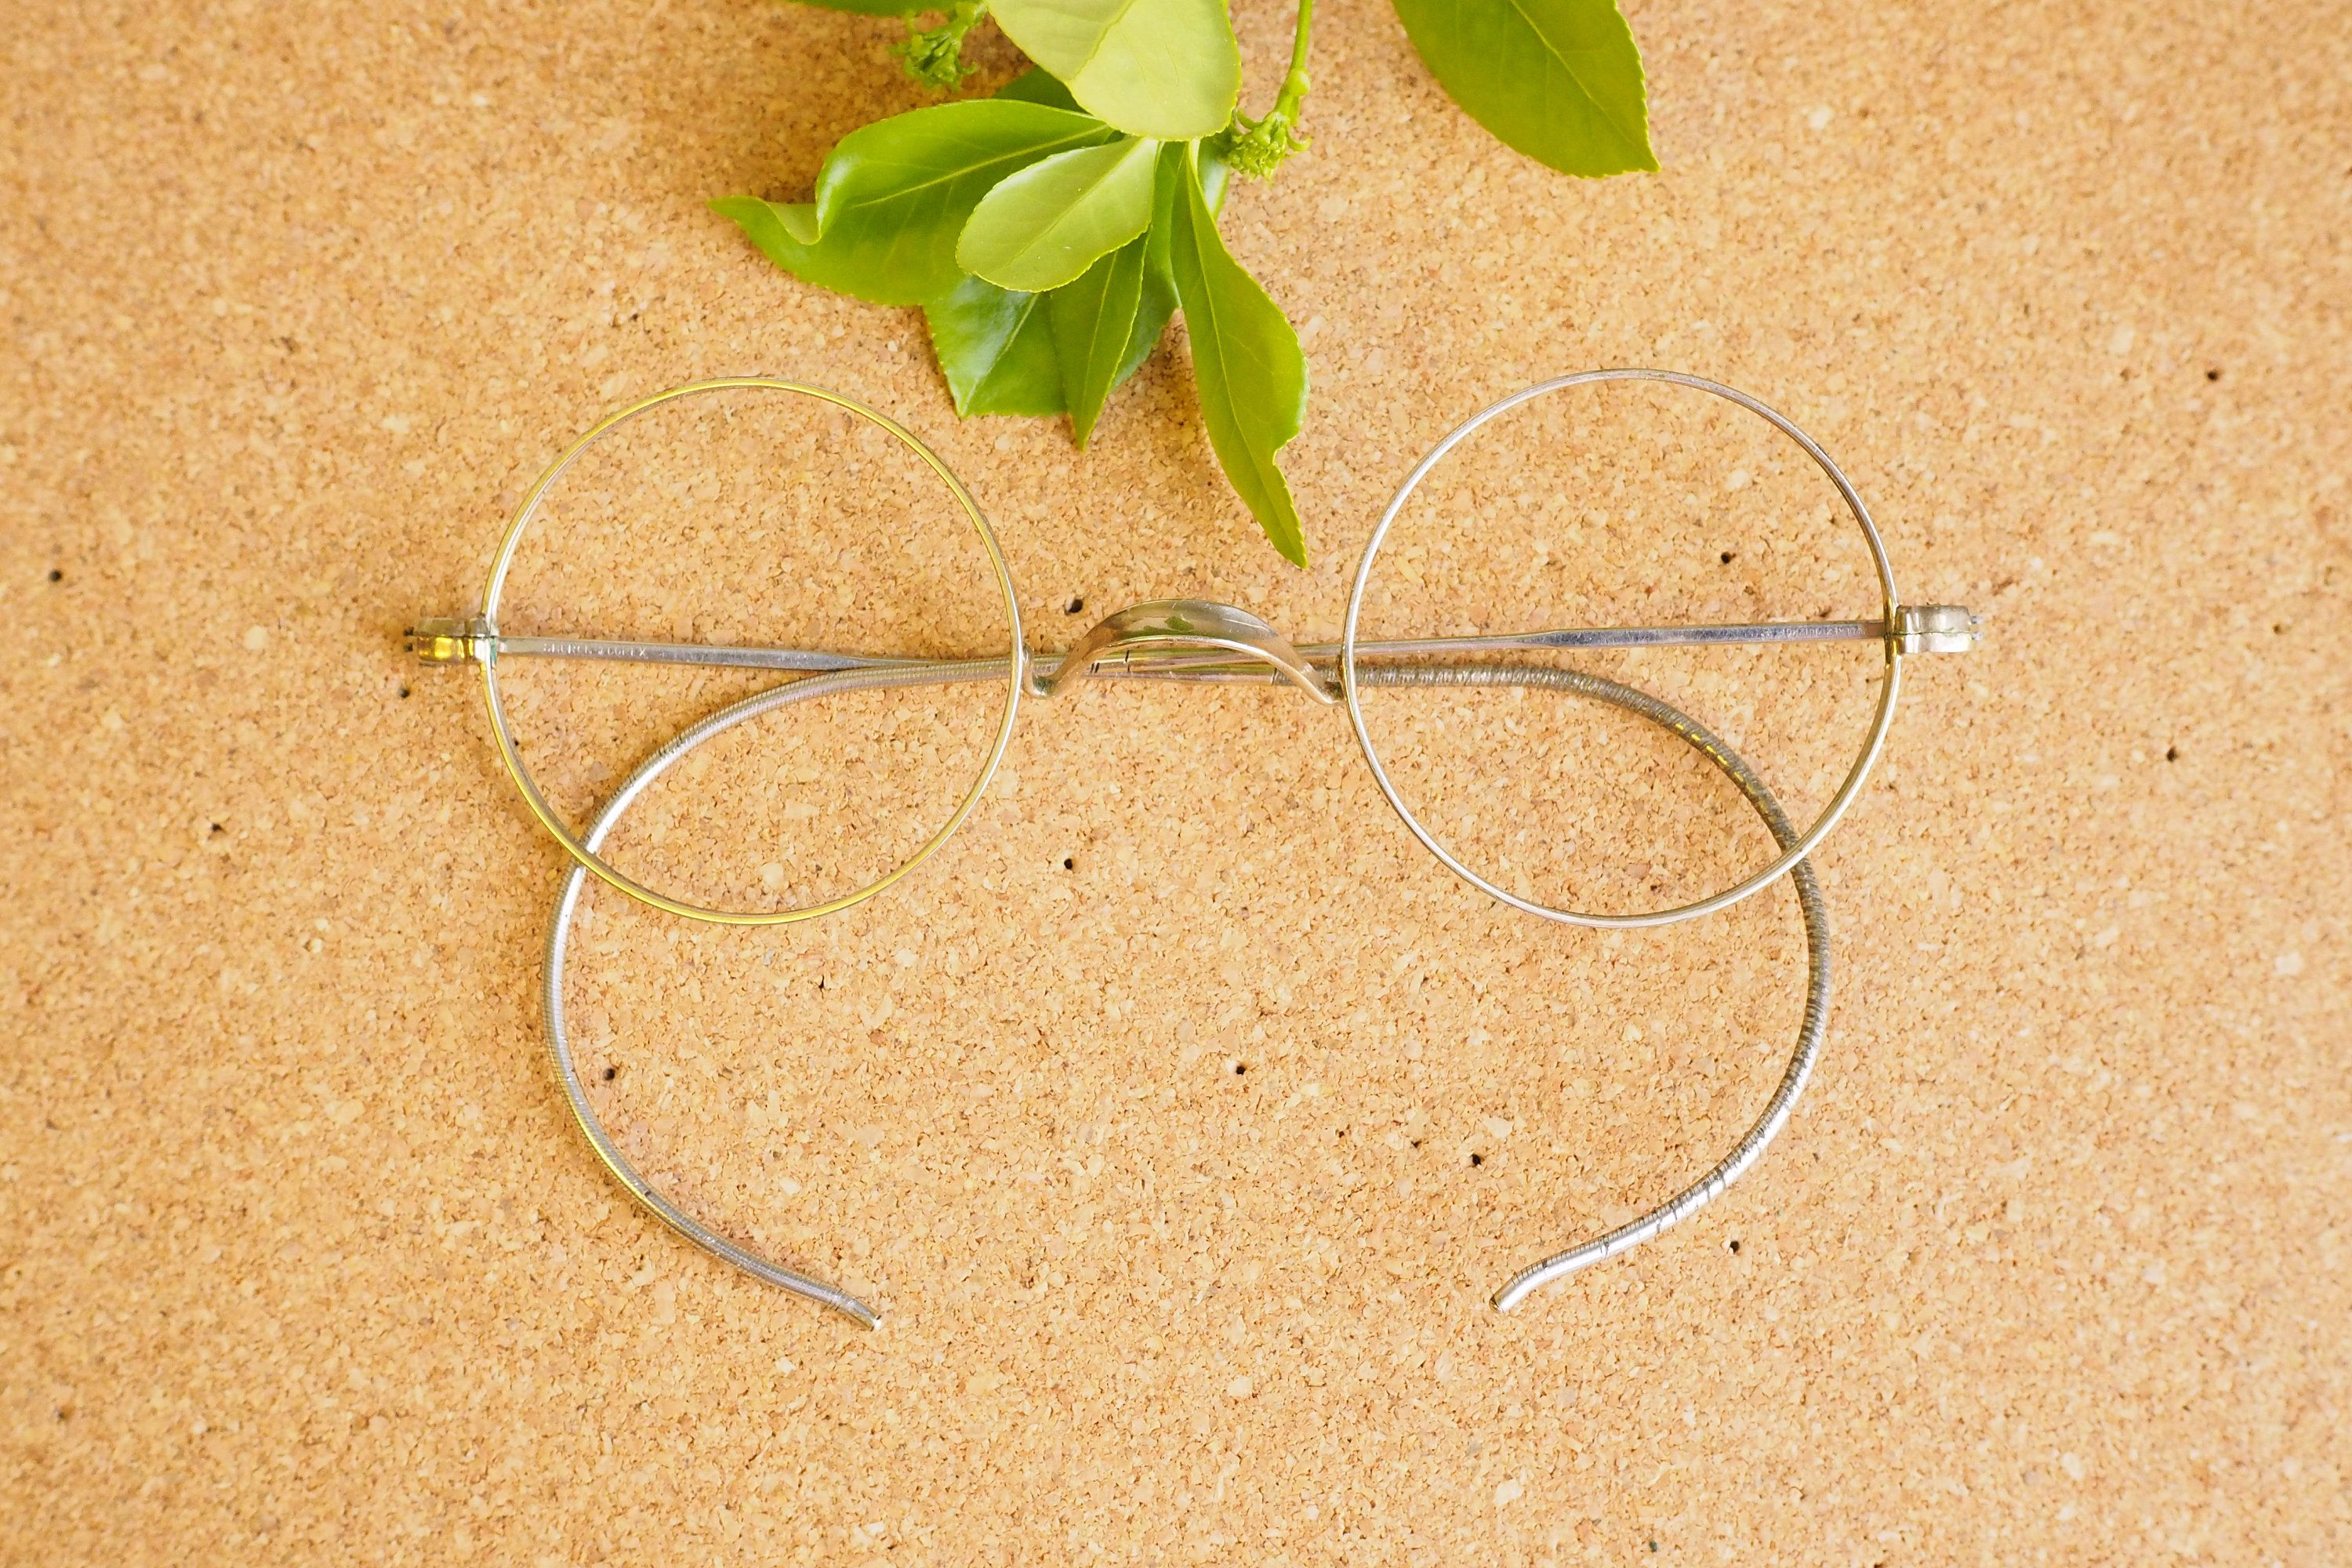 194f895a5e98 Vintage Eyeglasses 1920s Spectacles Round eyeglass Frames Glasses Saddle  Bridge Eyeglass Steampunk Gothic By Shuron Silver and rose gold